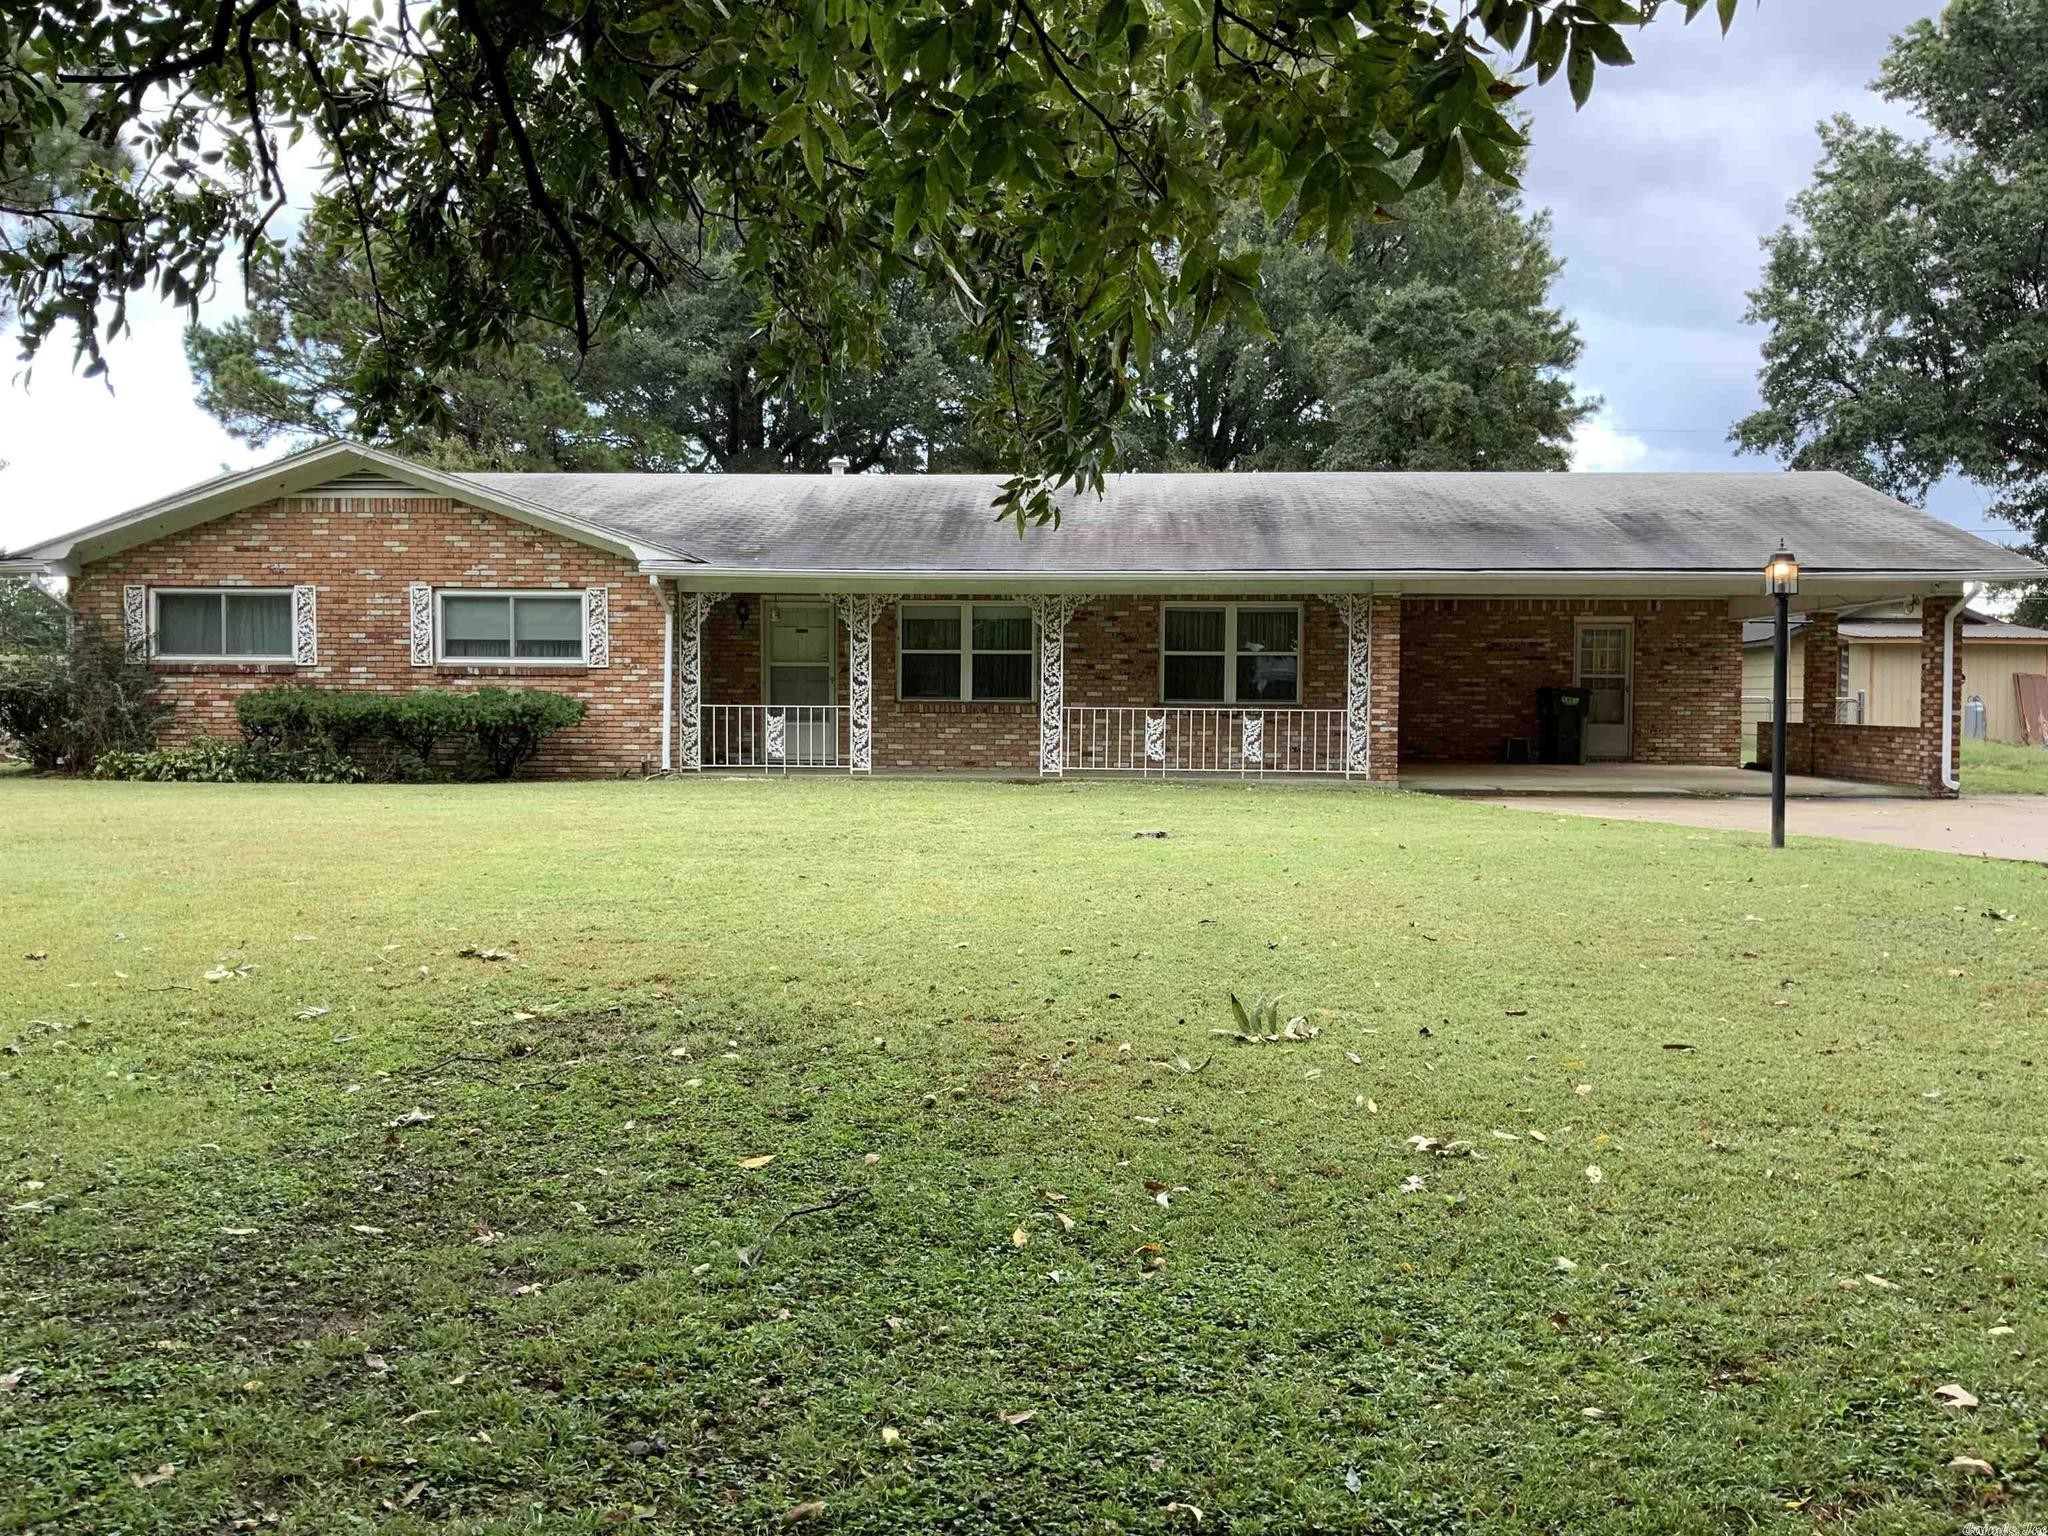 3-Bedroom House In Blytheville